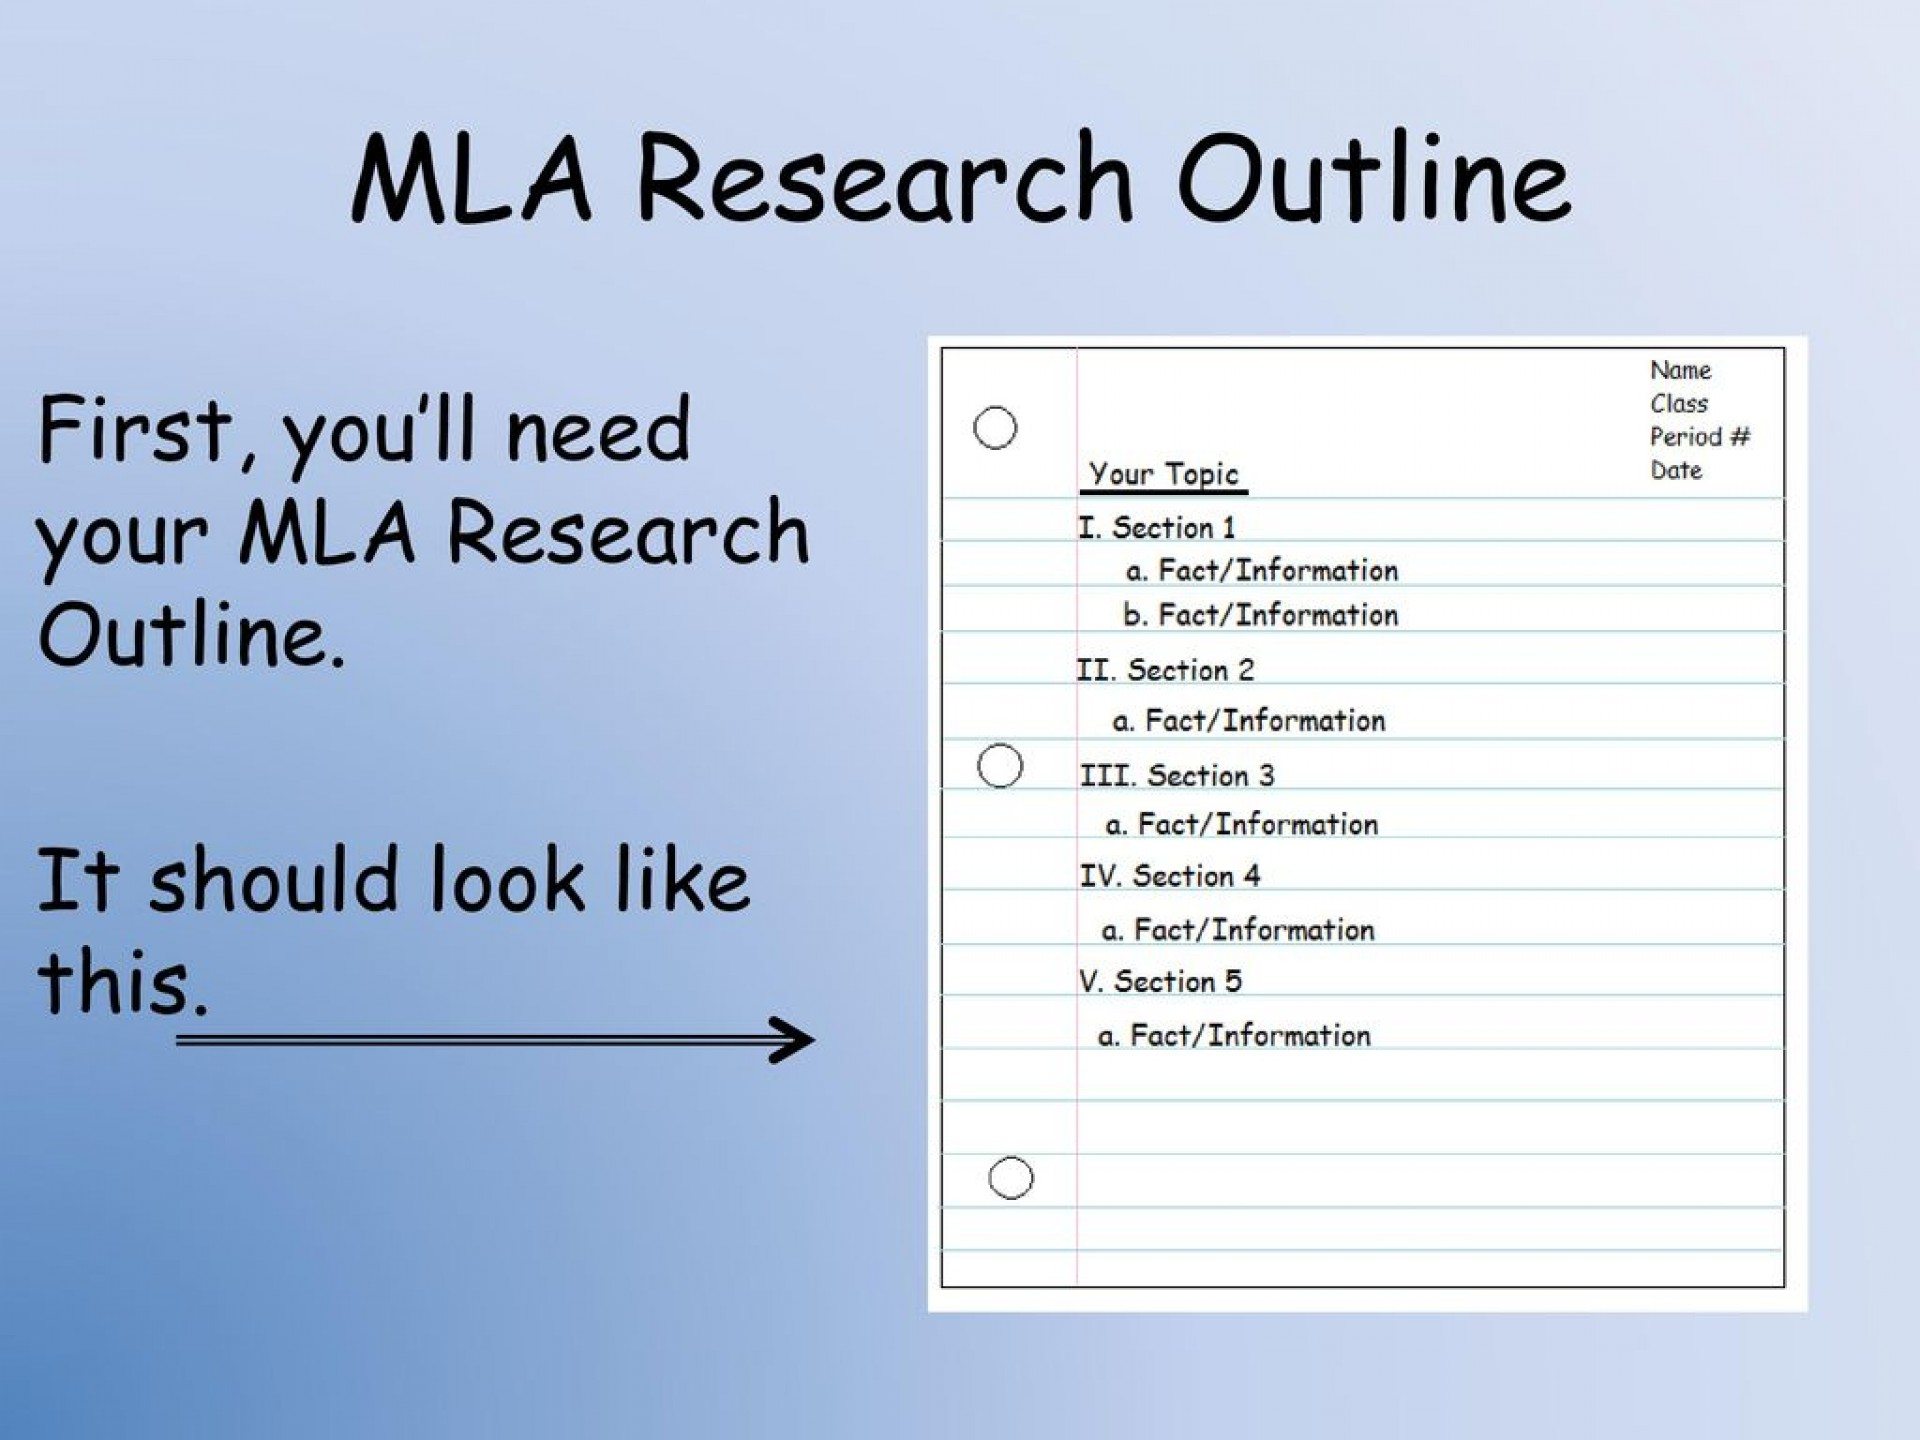 002 Notecards For Research Paper Mla Mlaresearchoutlinefirst2cyoue28099llneedyourmlaresearchoutline Shocking Sample How To Write 1920